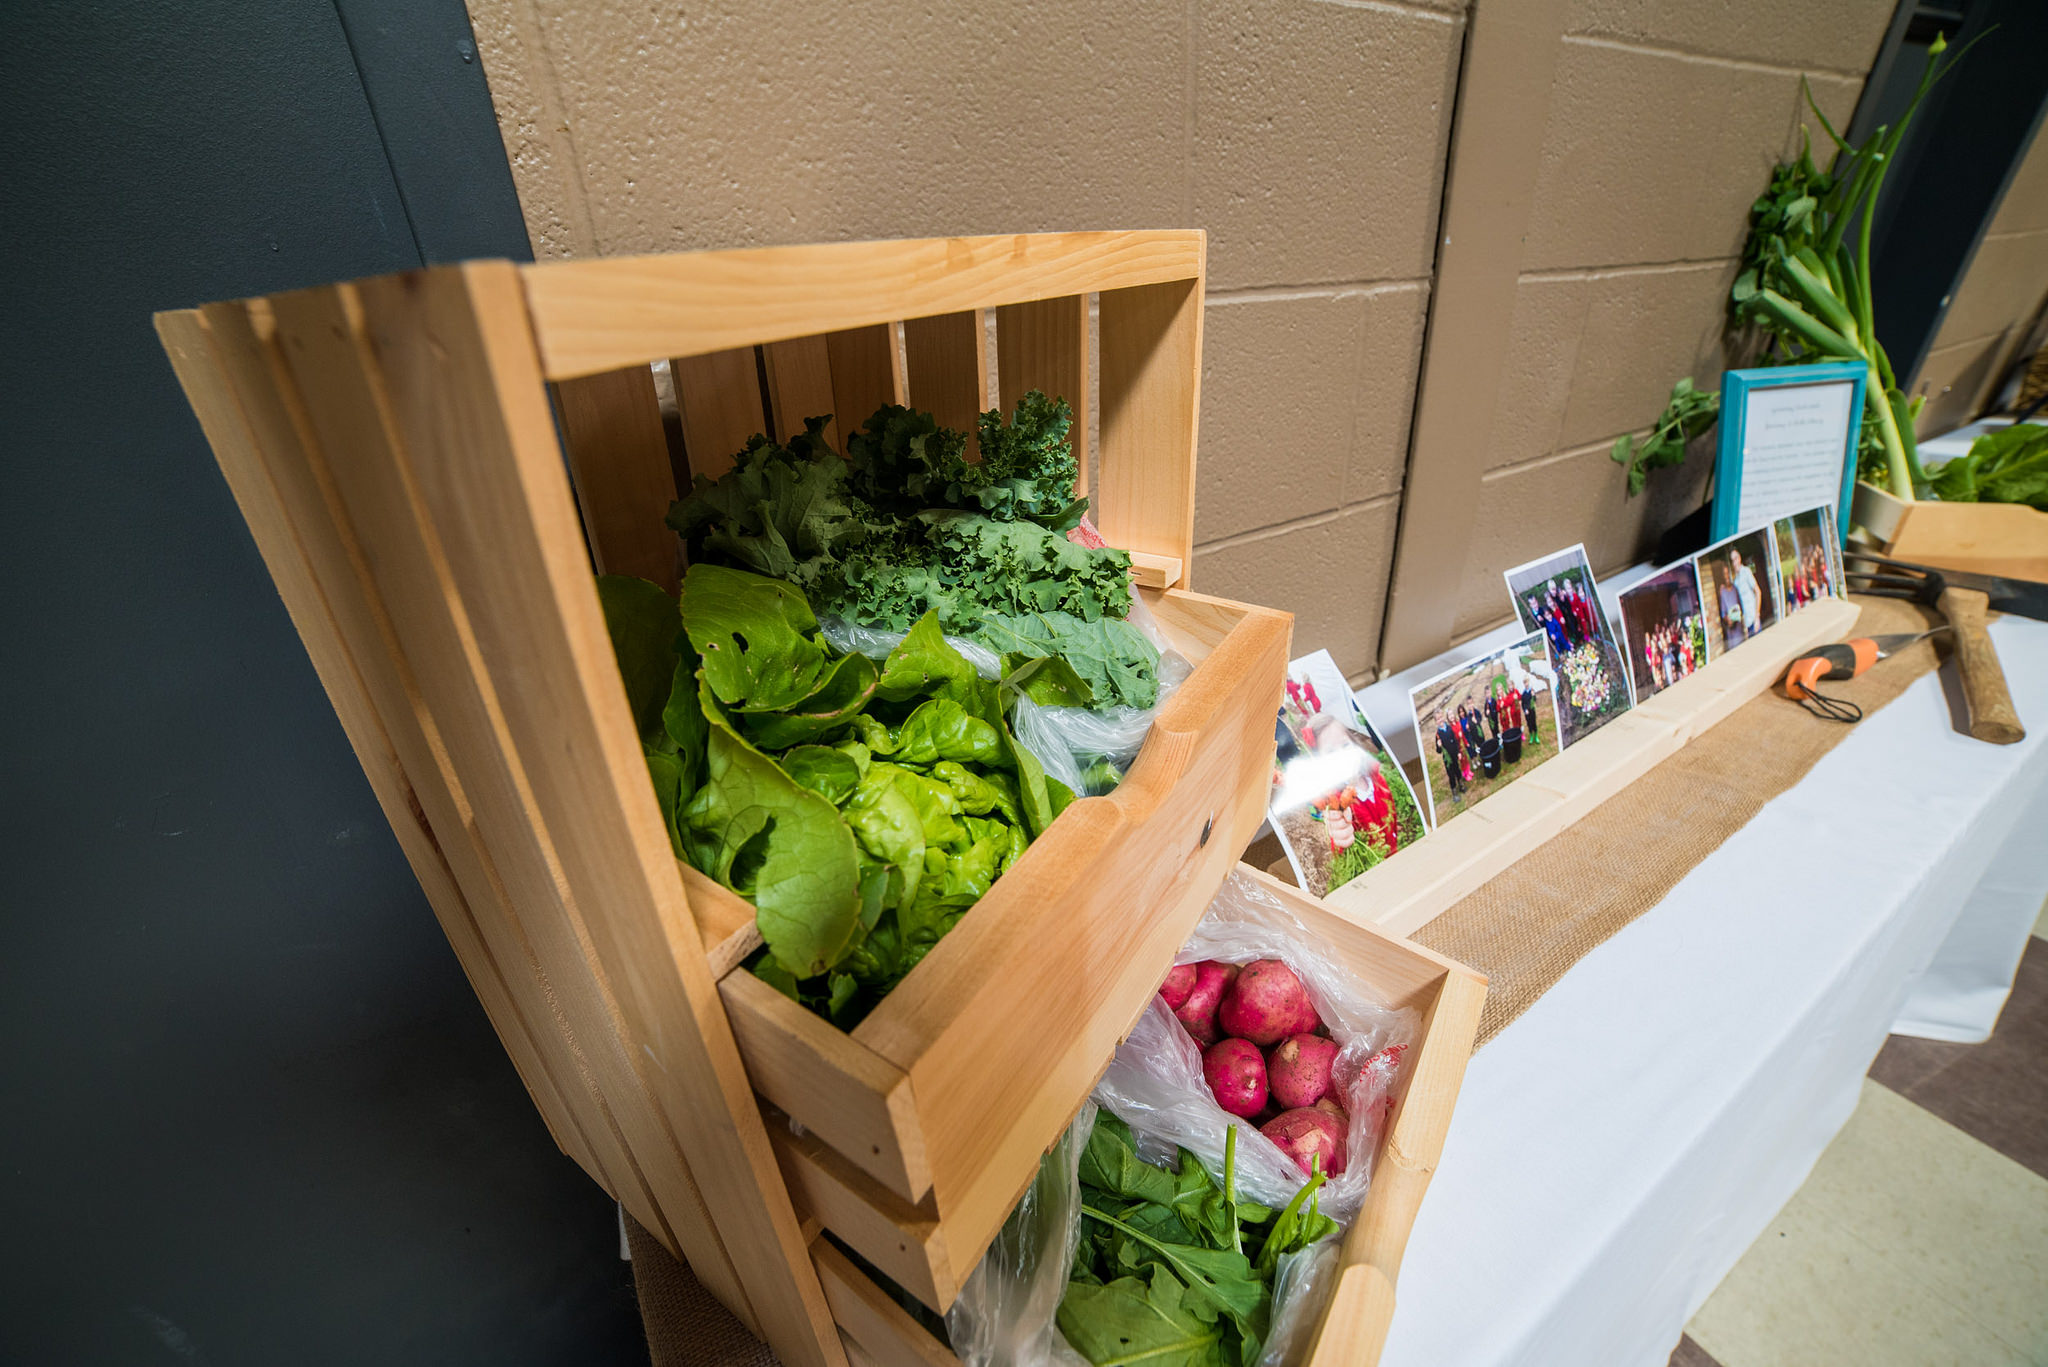 Some of the produce harvested by students at the Academy for G.O.D. was showcased for visitors.